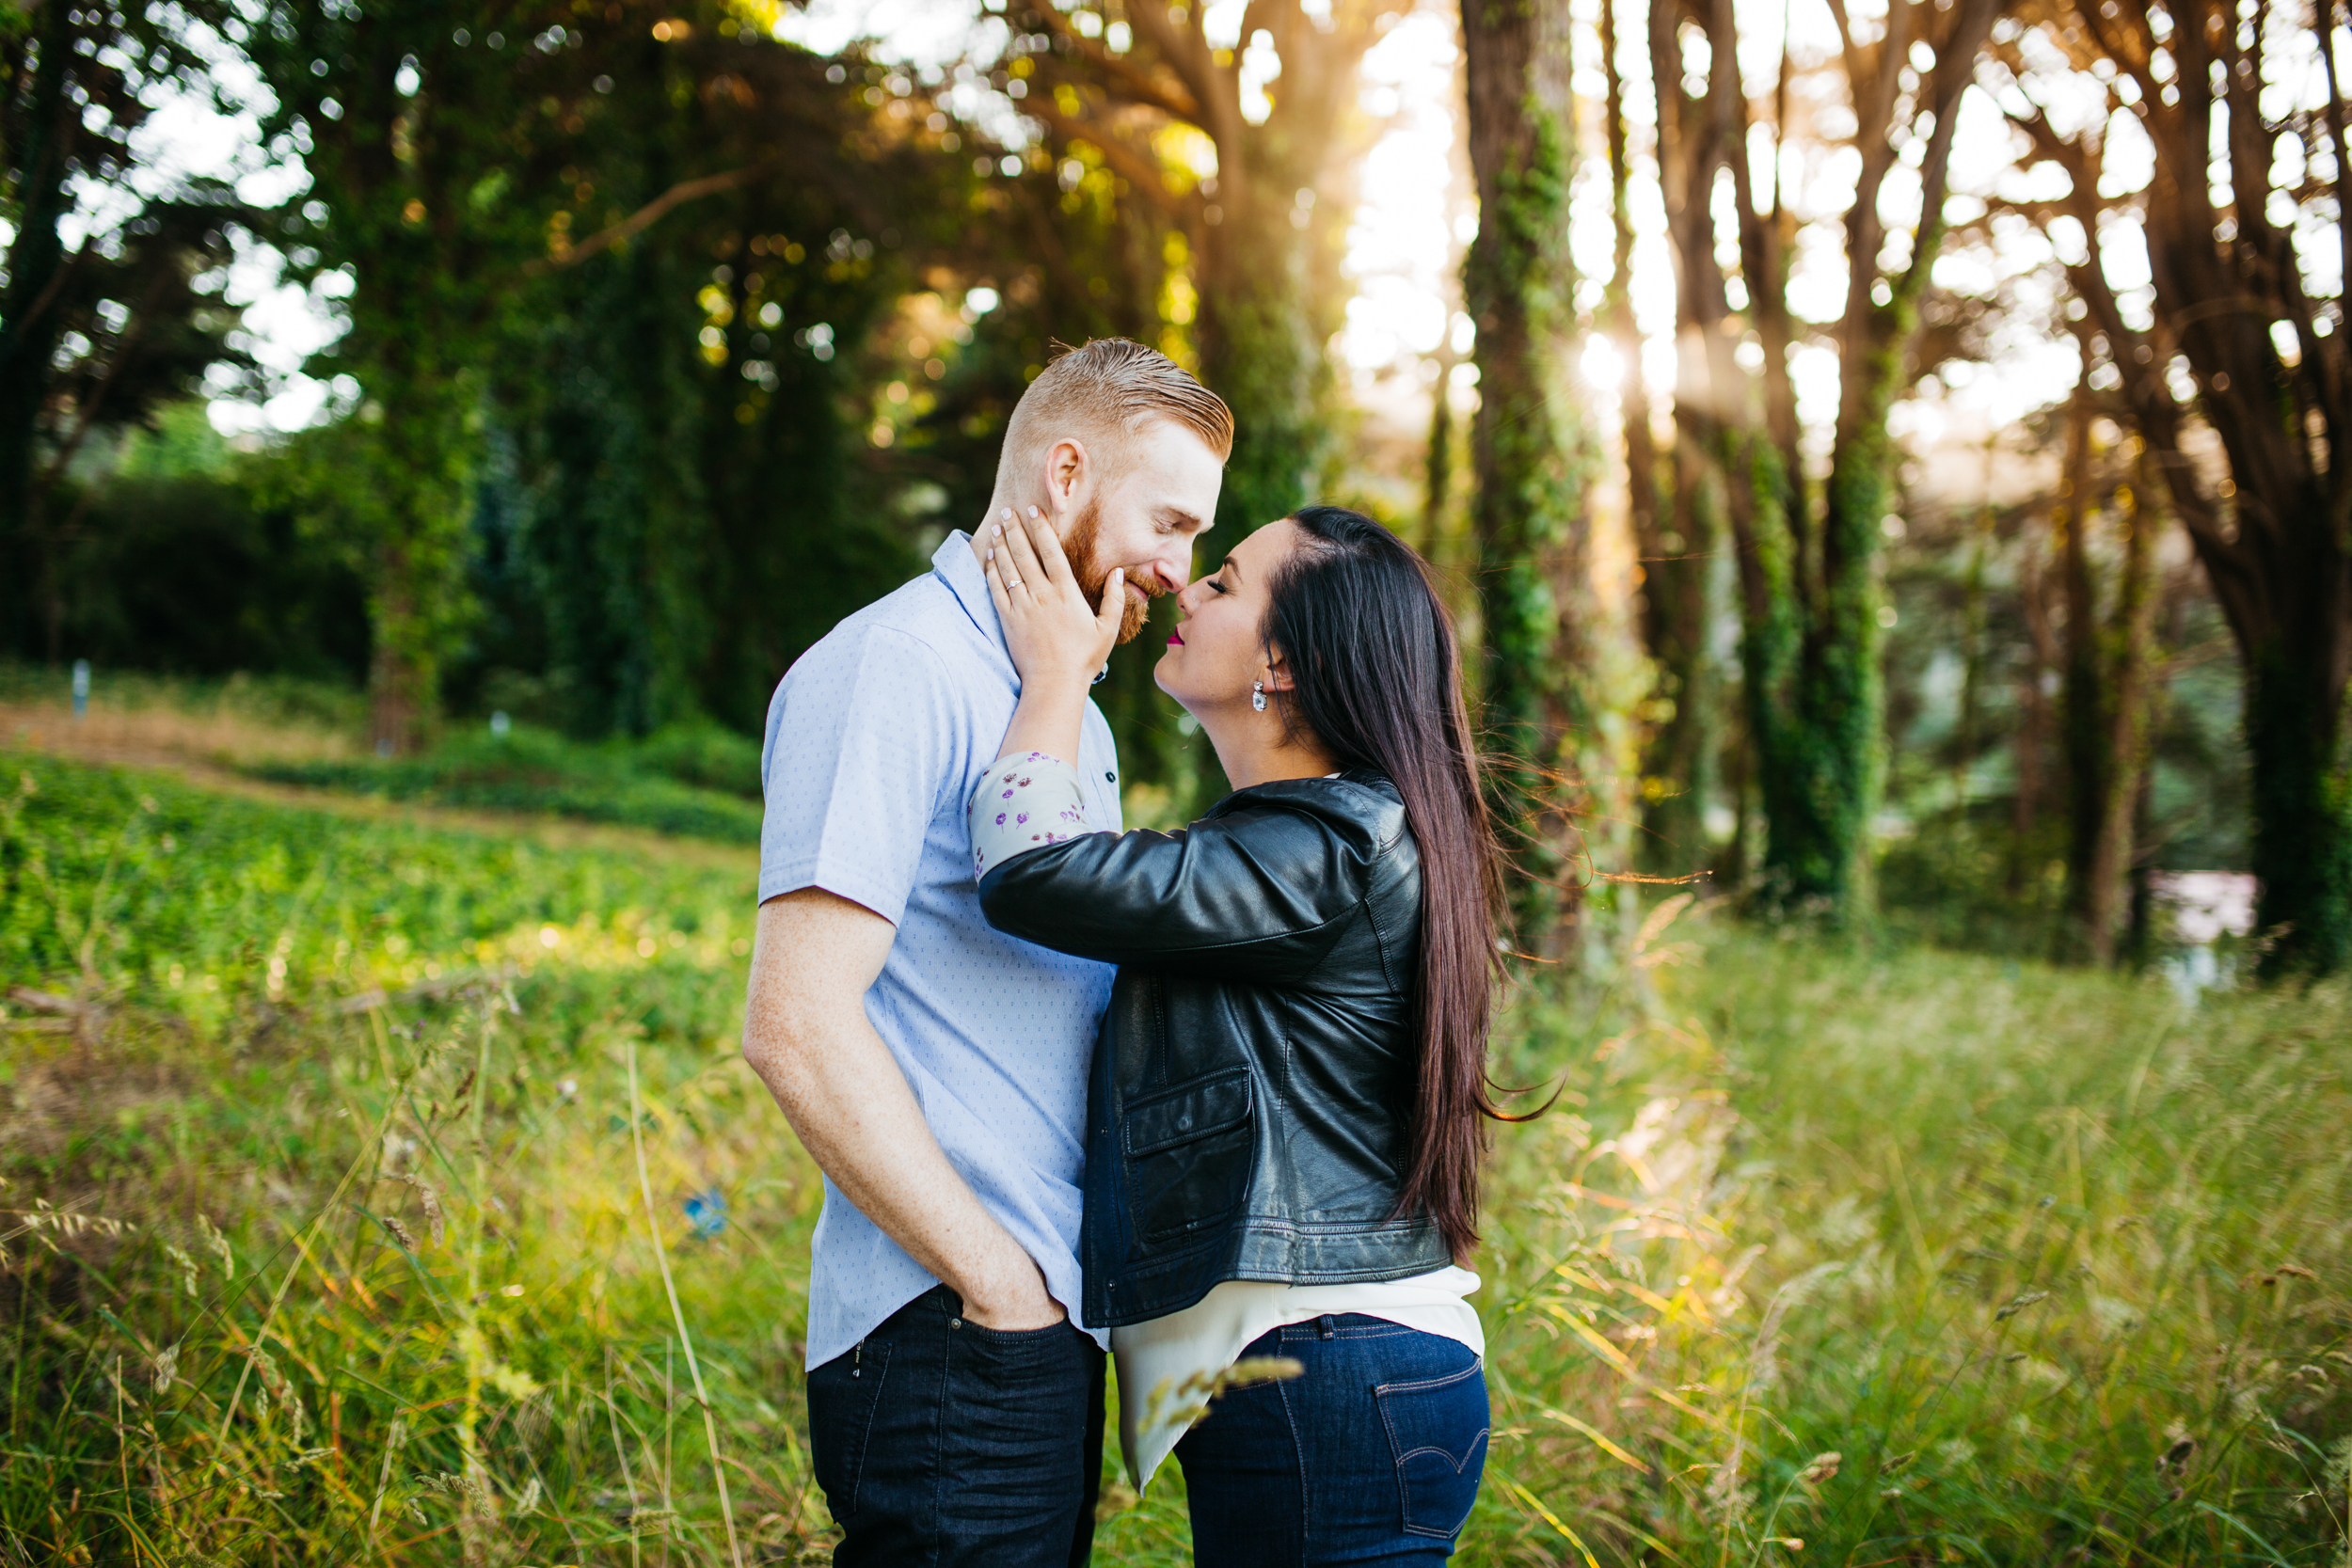 Engagement Photos-San Fransisco-Golden Gate Park-Ranalla Photo & Films-37.jpg